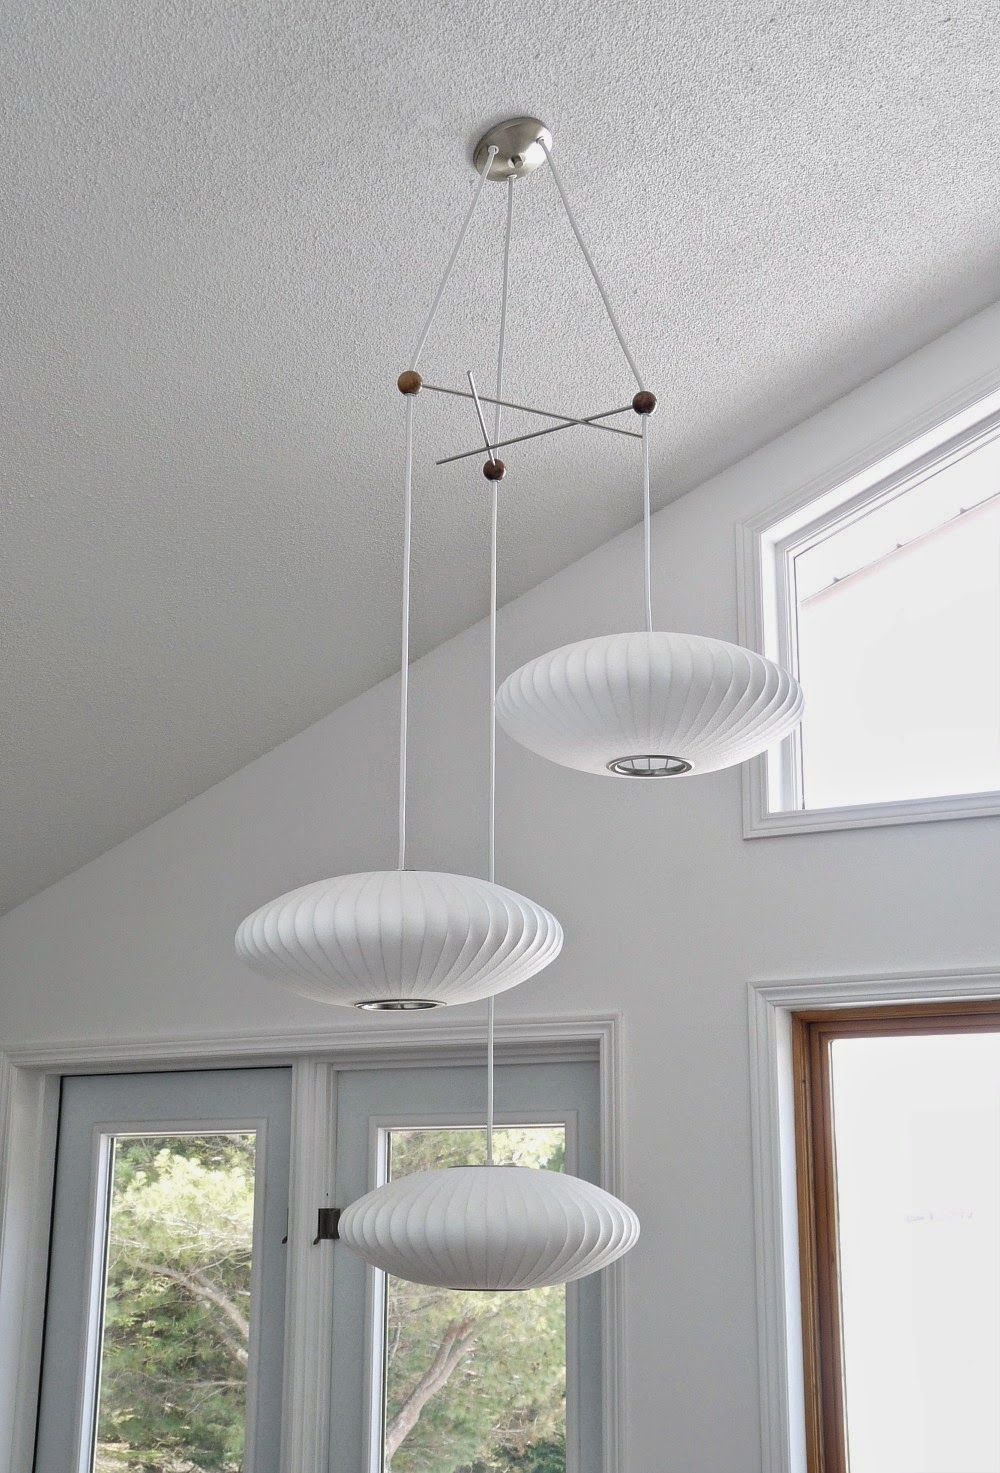 herman f lamp lighting furniture b id fiberglass saucer manufactured bubble miller chandeliers by george shaped mfg nelson lights pendant s